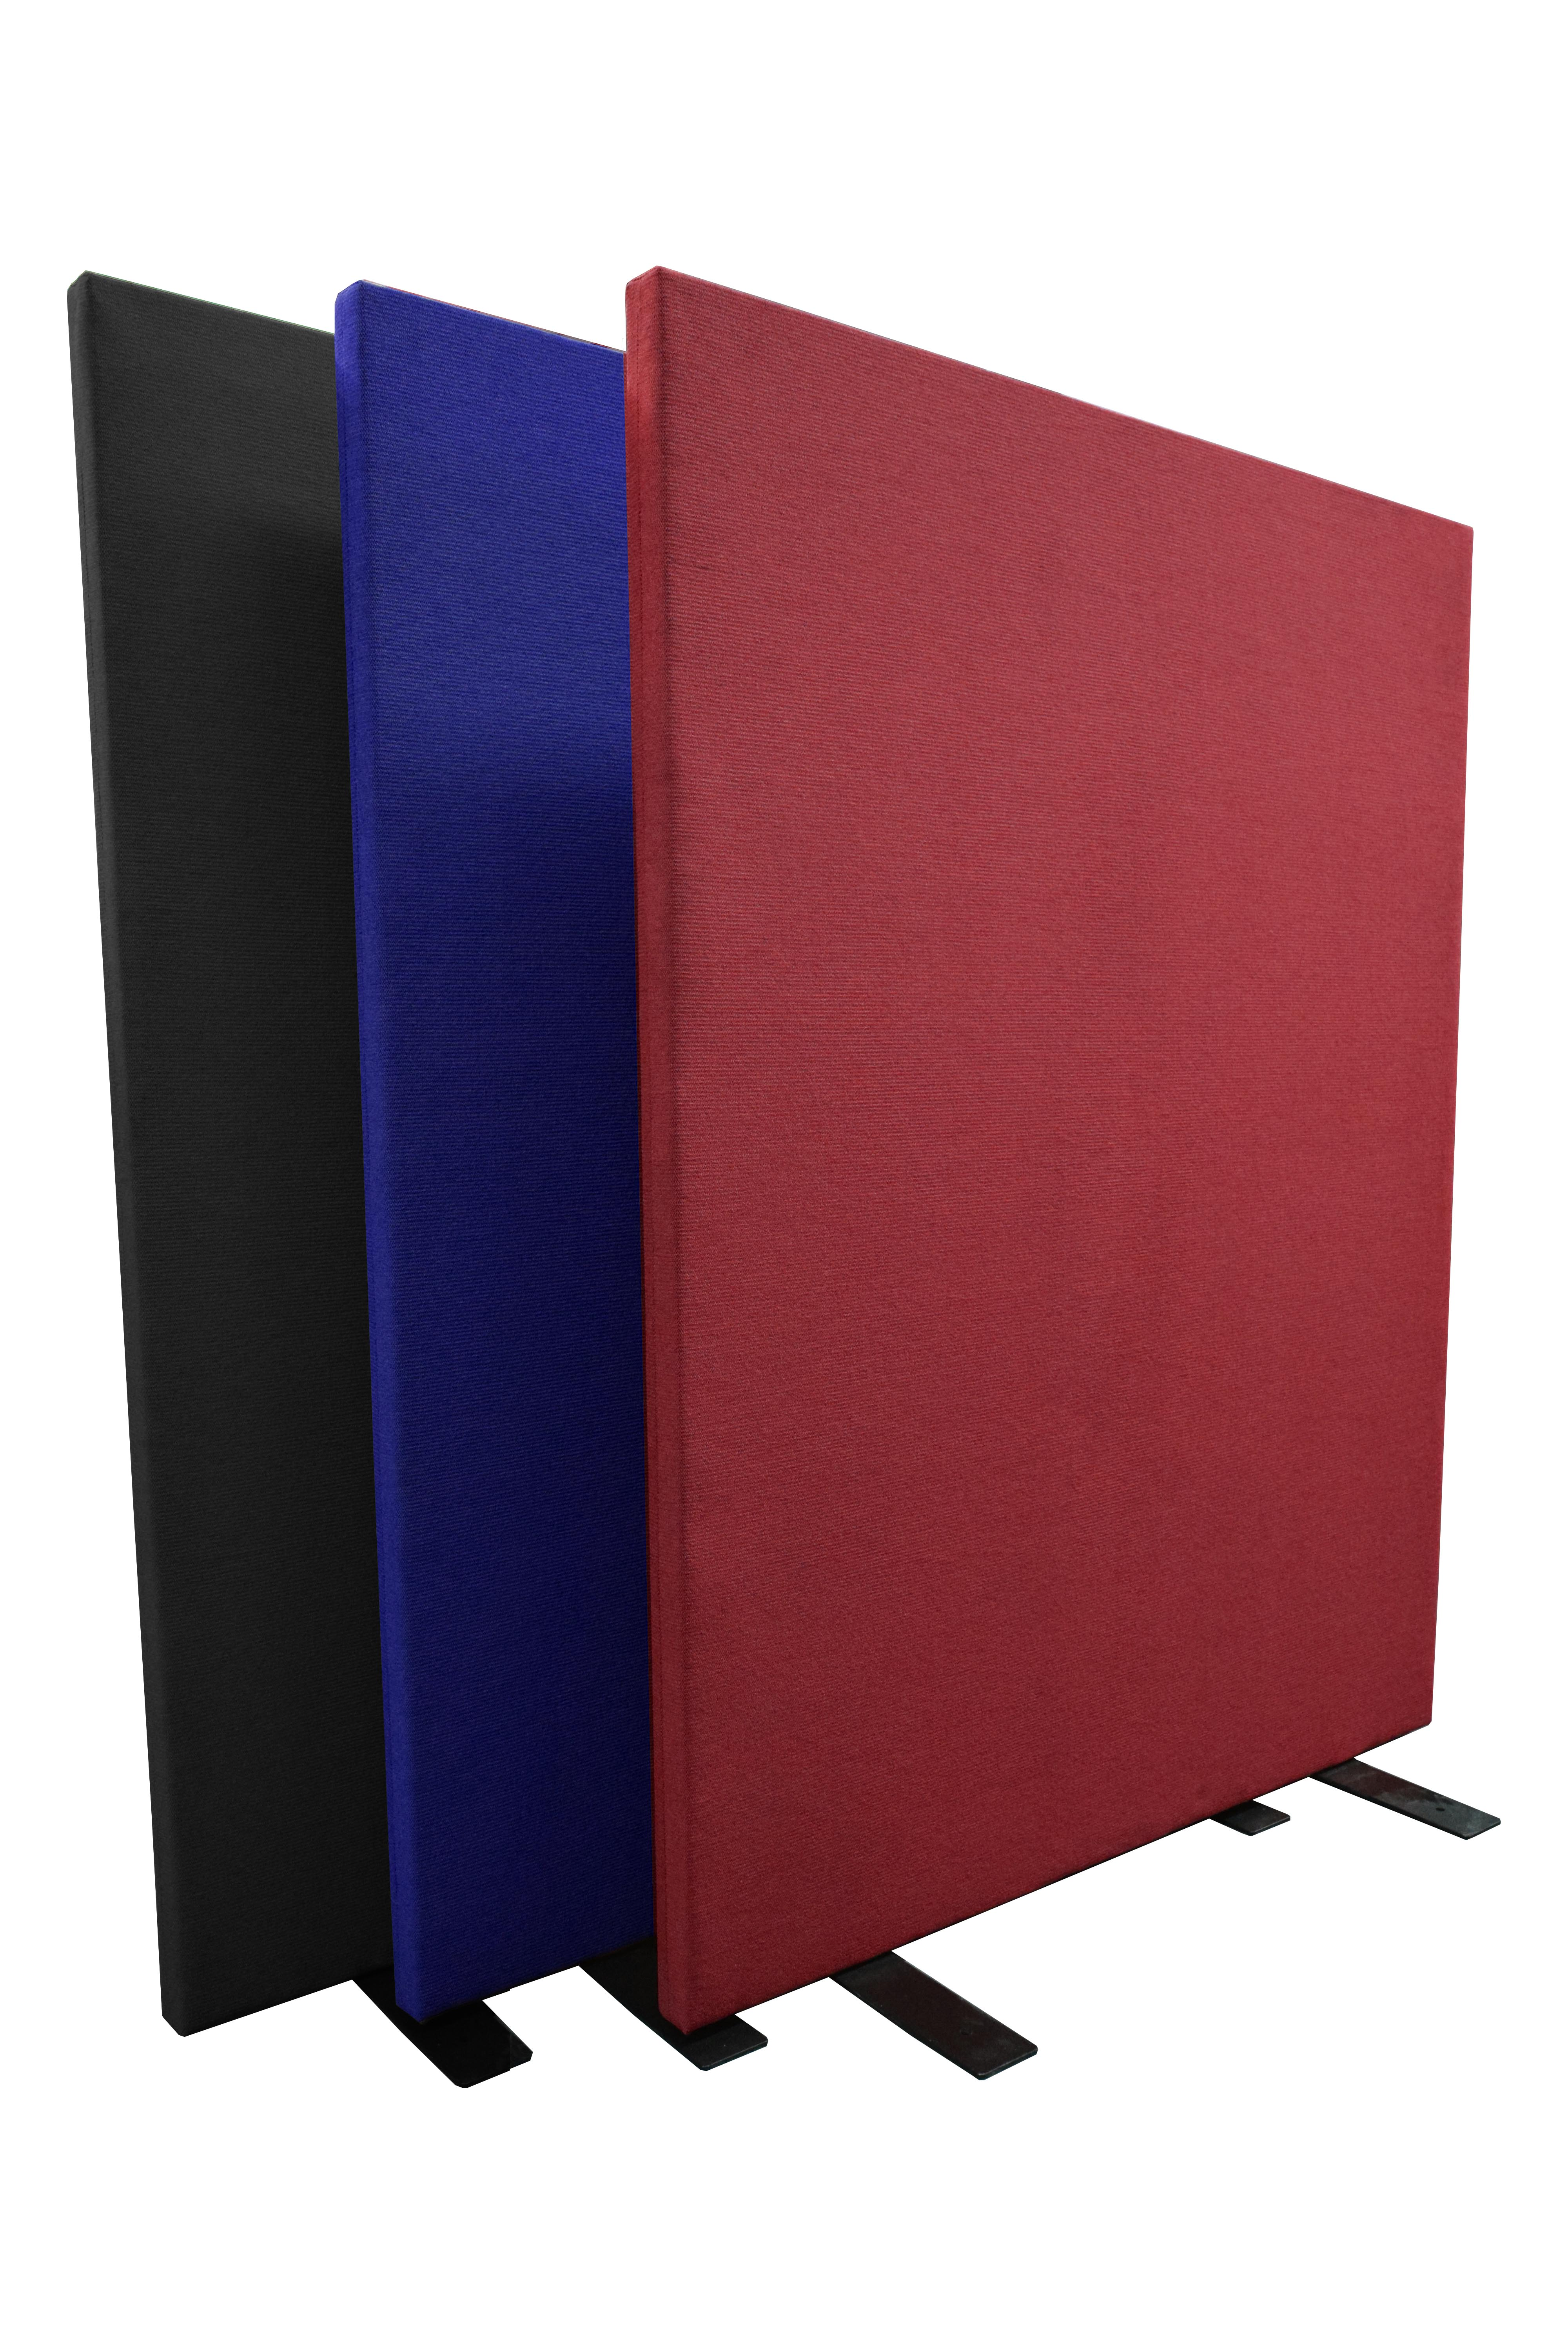 System 2000 Room Dividers